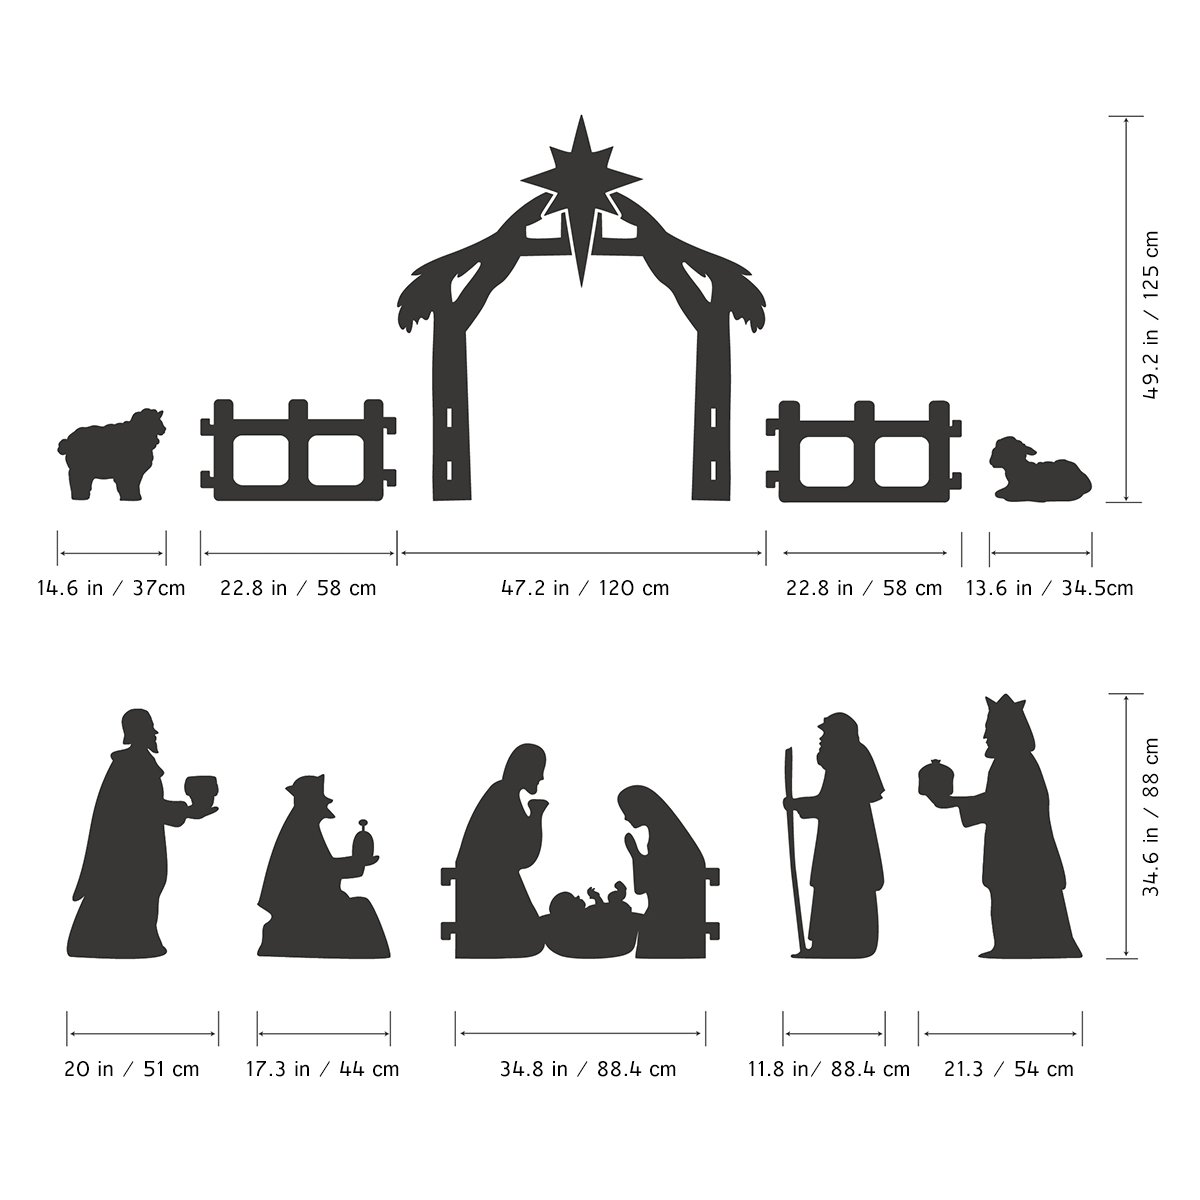 UNOMOR Outdoor Nativity Scene Christmas Decoration, Silhouette Style, About 4 Feet Tall